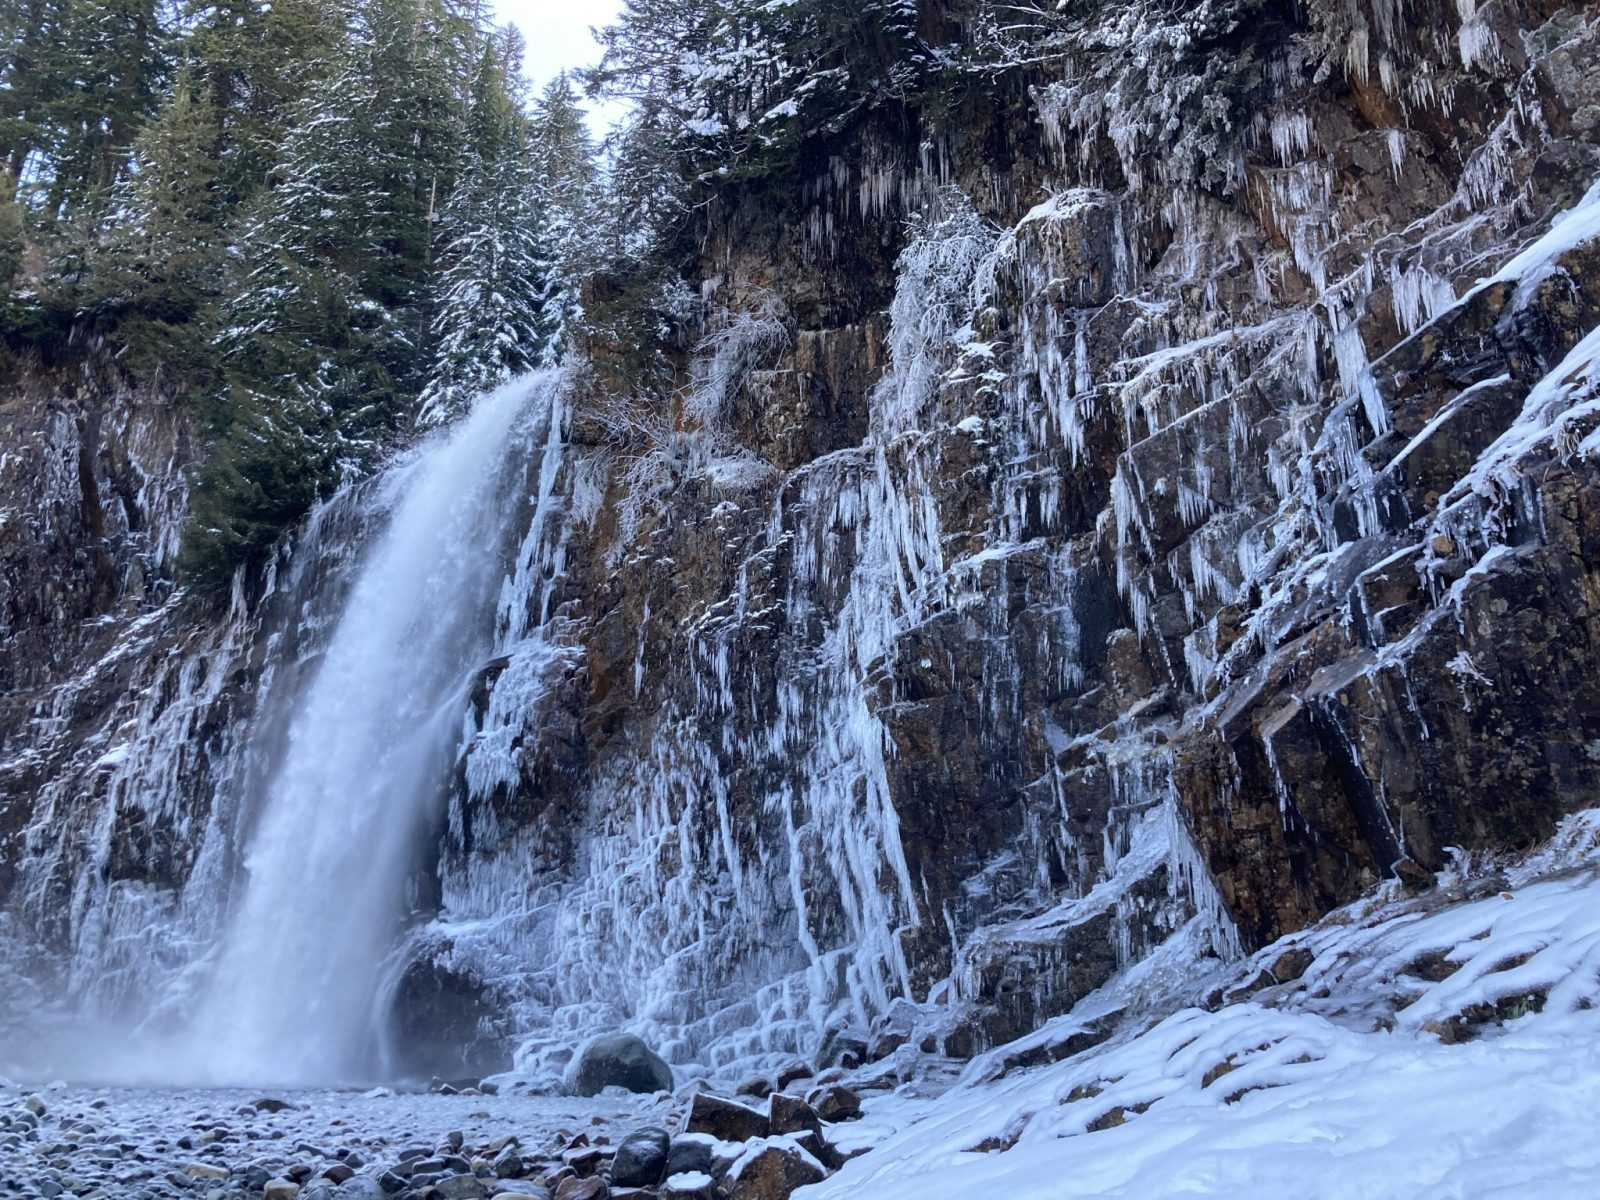 A powerful waterfall coming over a vertical rock face. The rocks are covered in icicles and the ground around the waterfall is covered in snow.